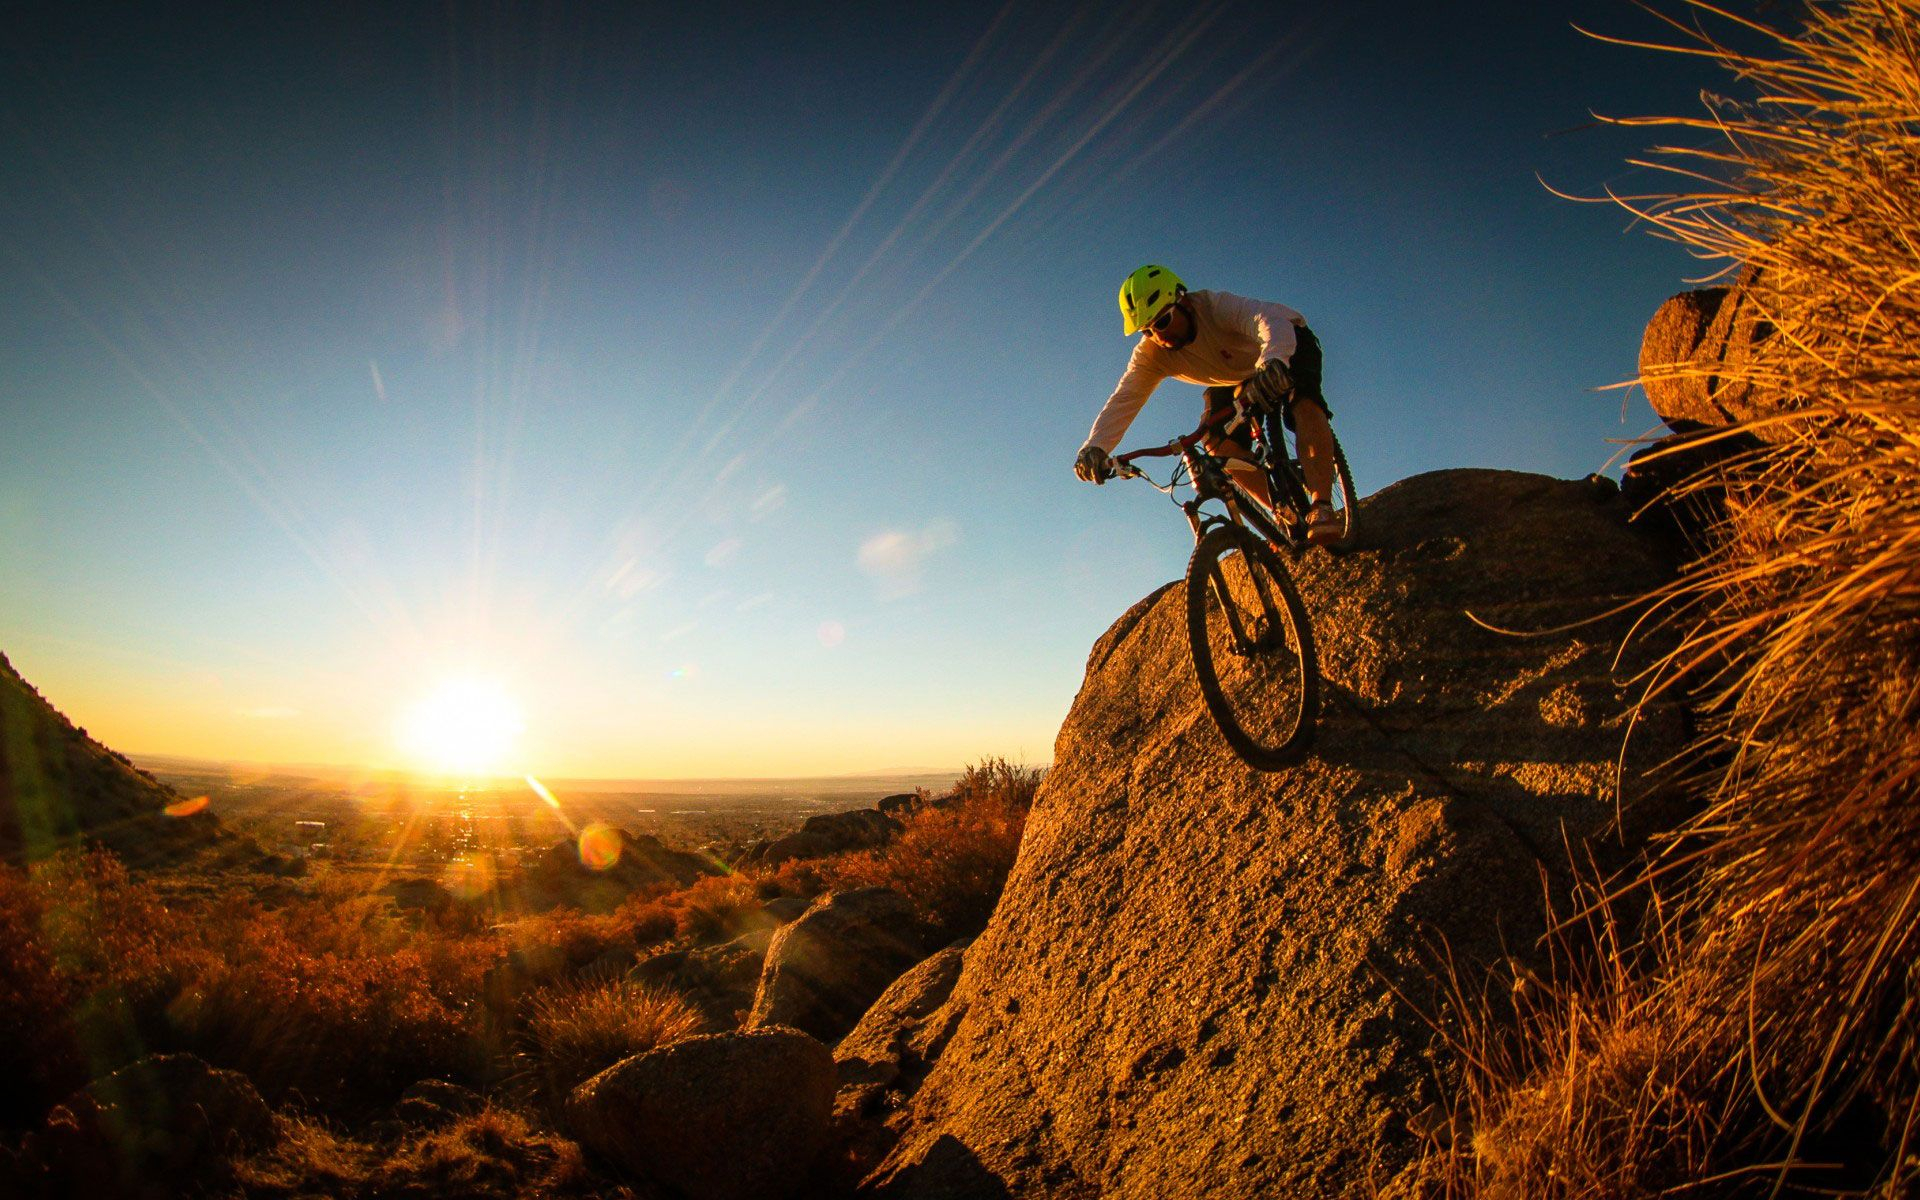 mountain biking – hd iphone wallpaper | mtb related | bicycle